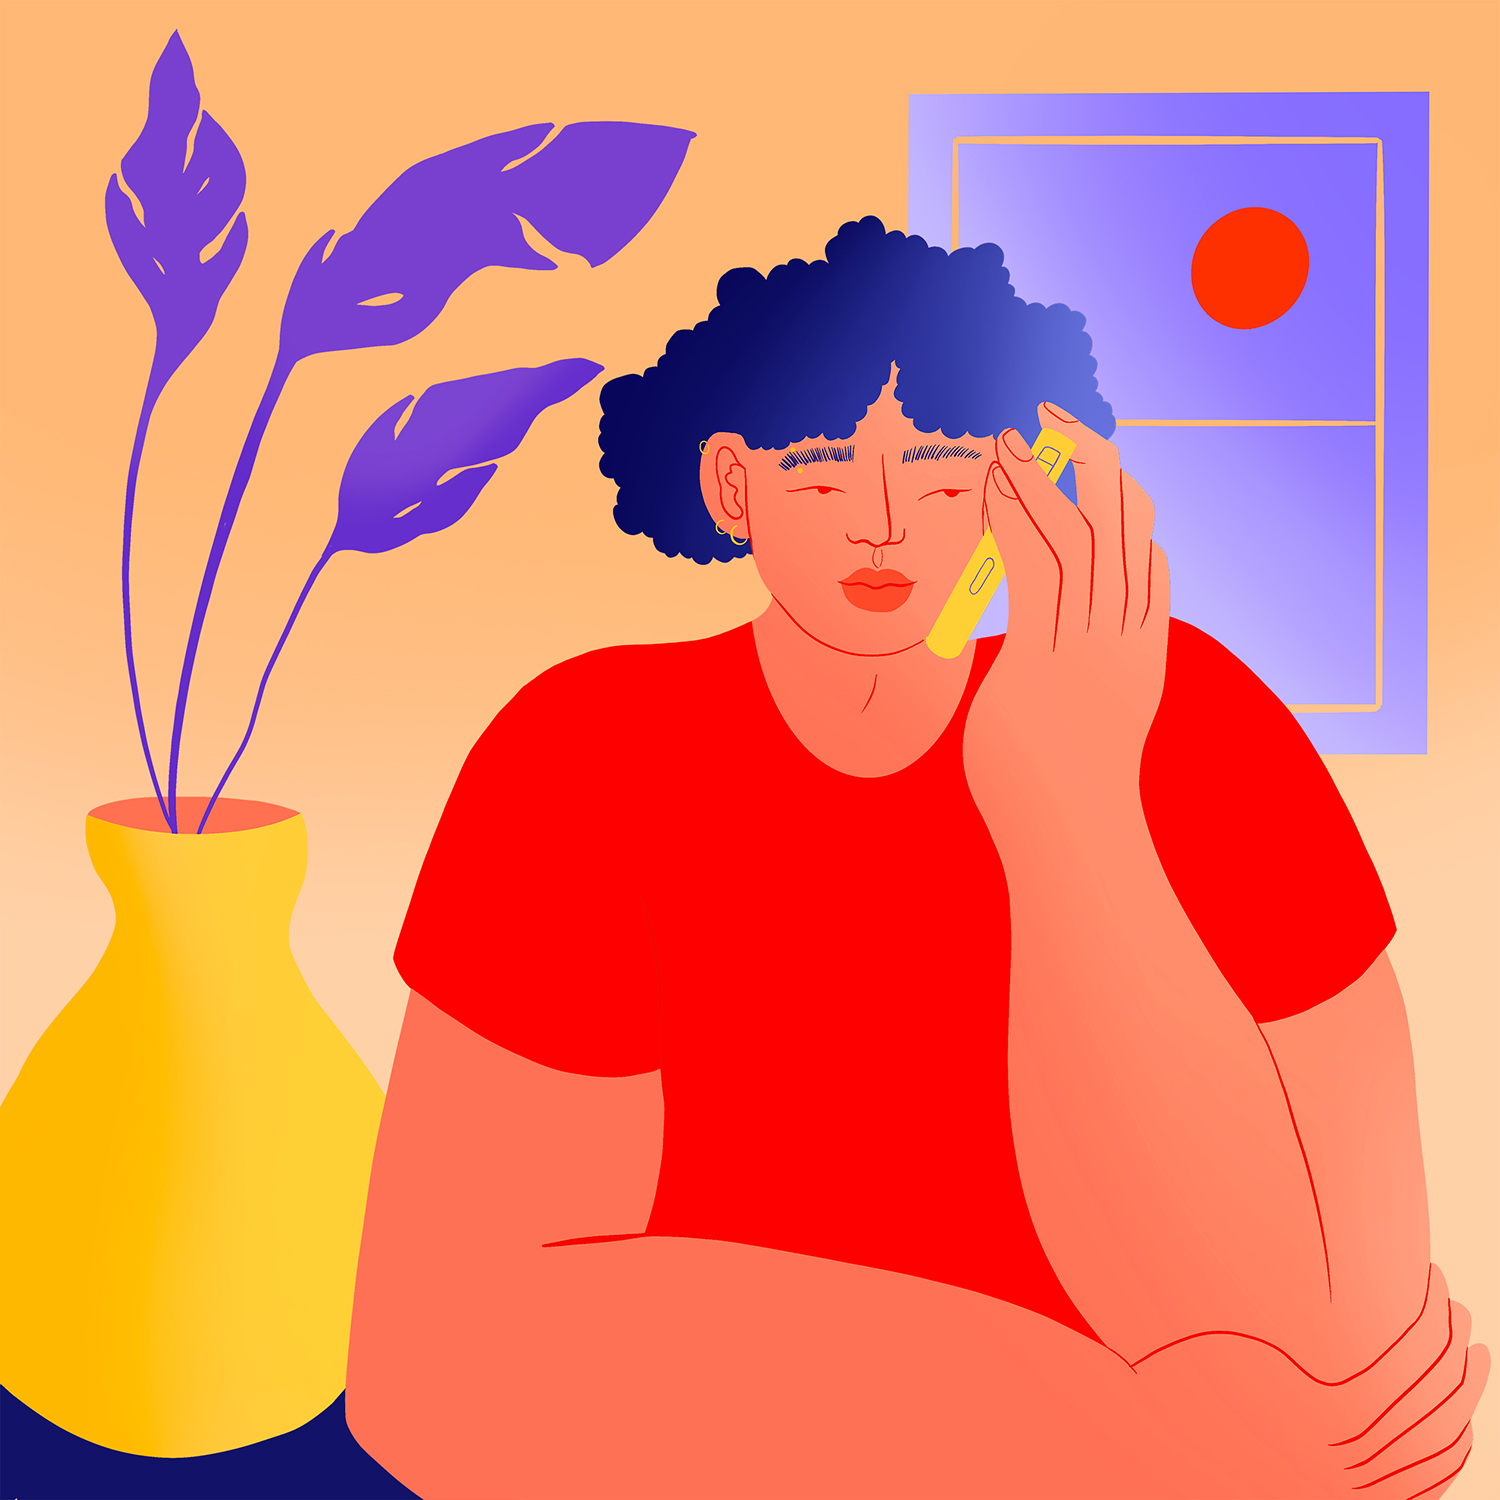 Bright illustration of a young person listening on the phone and looking hopeful